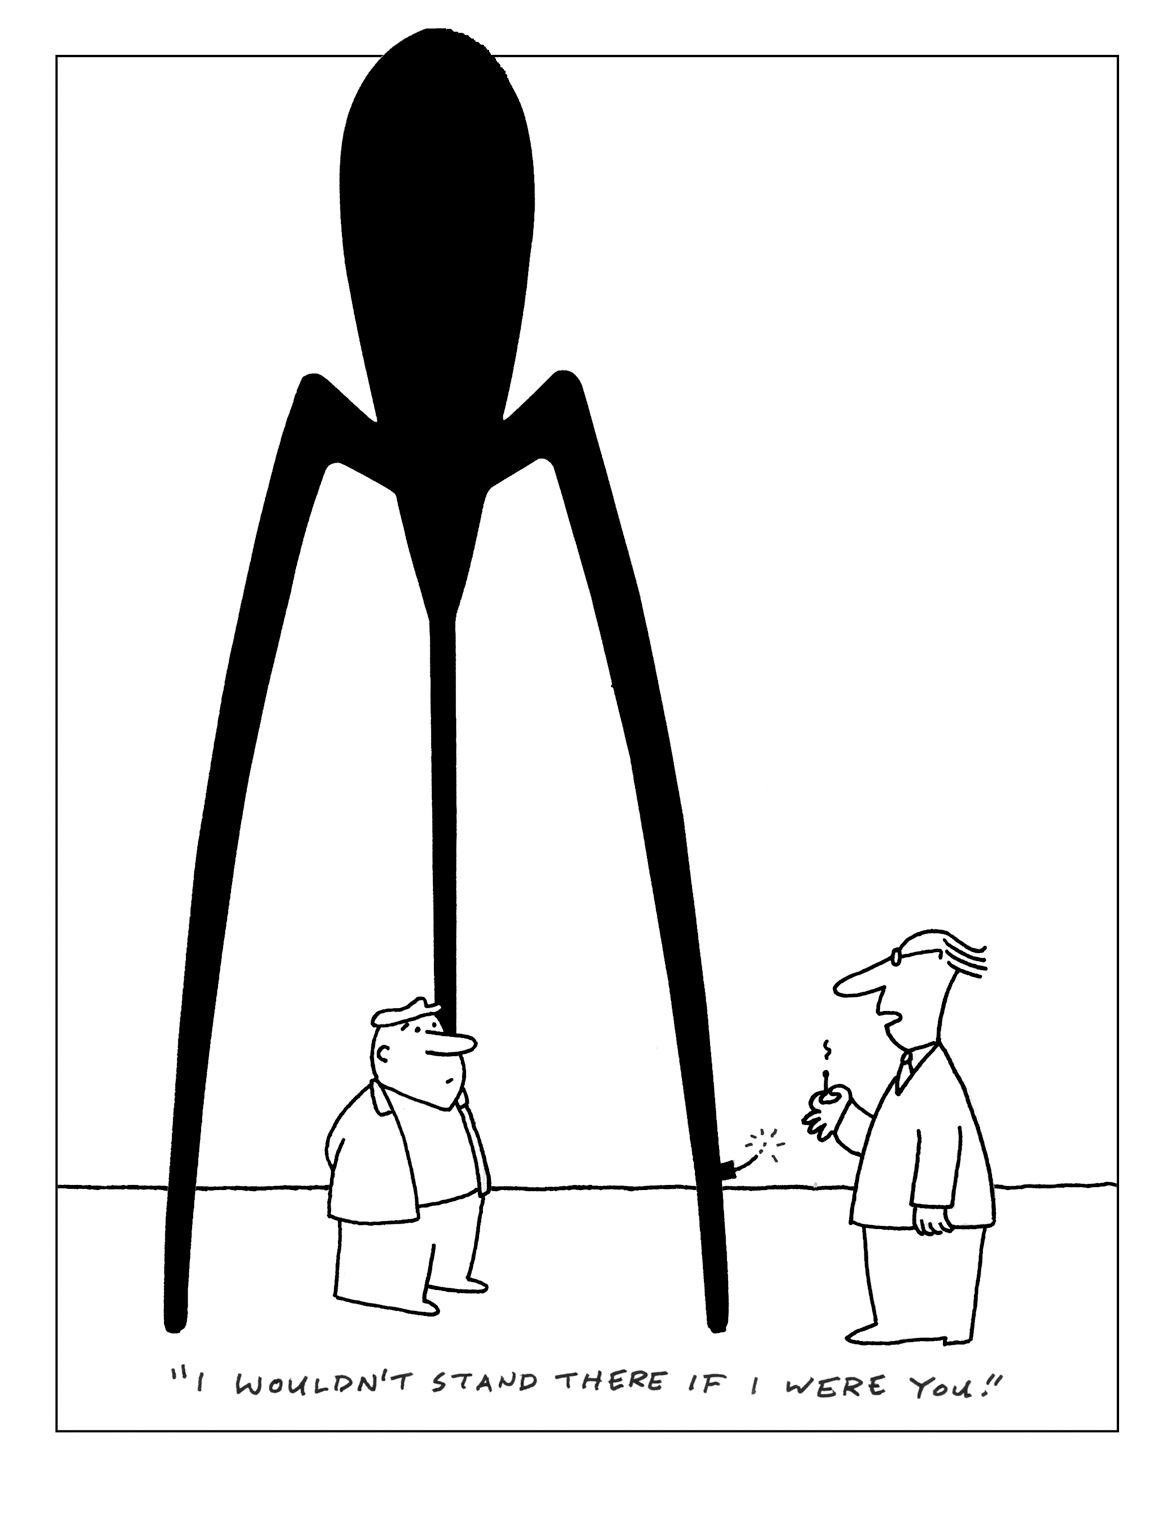 charles barsotti stand there cartoon